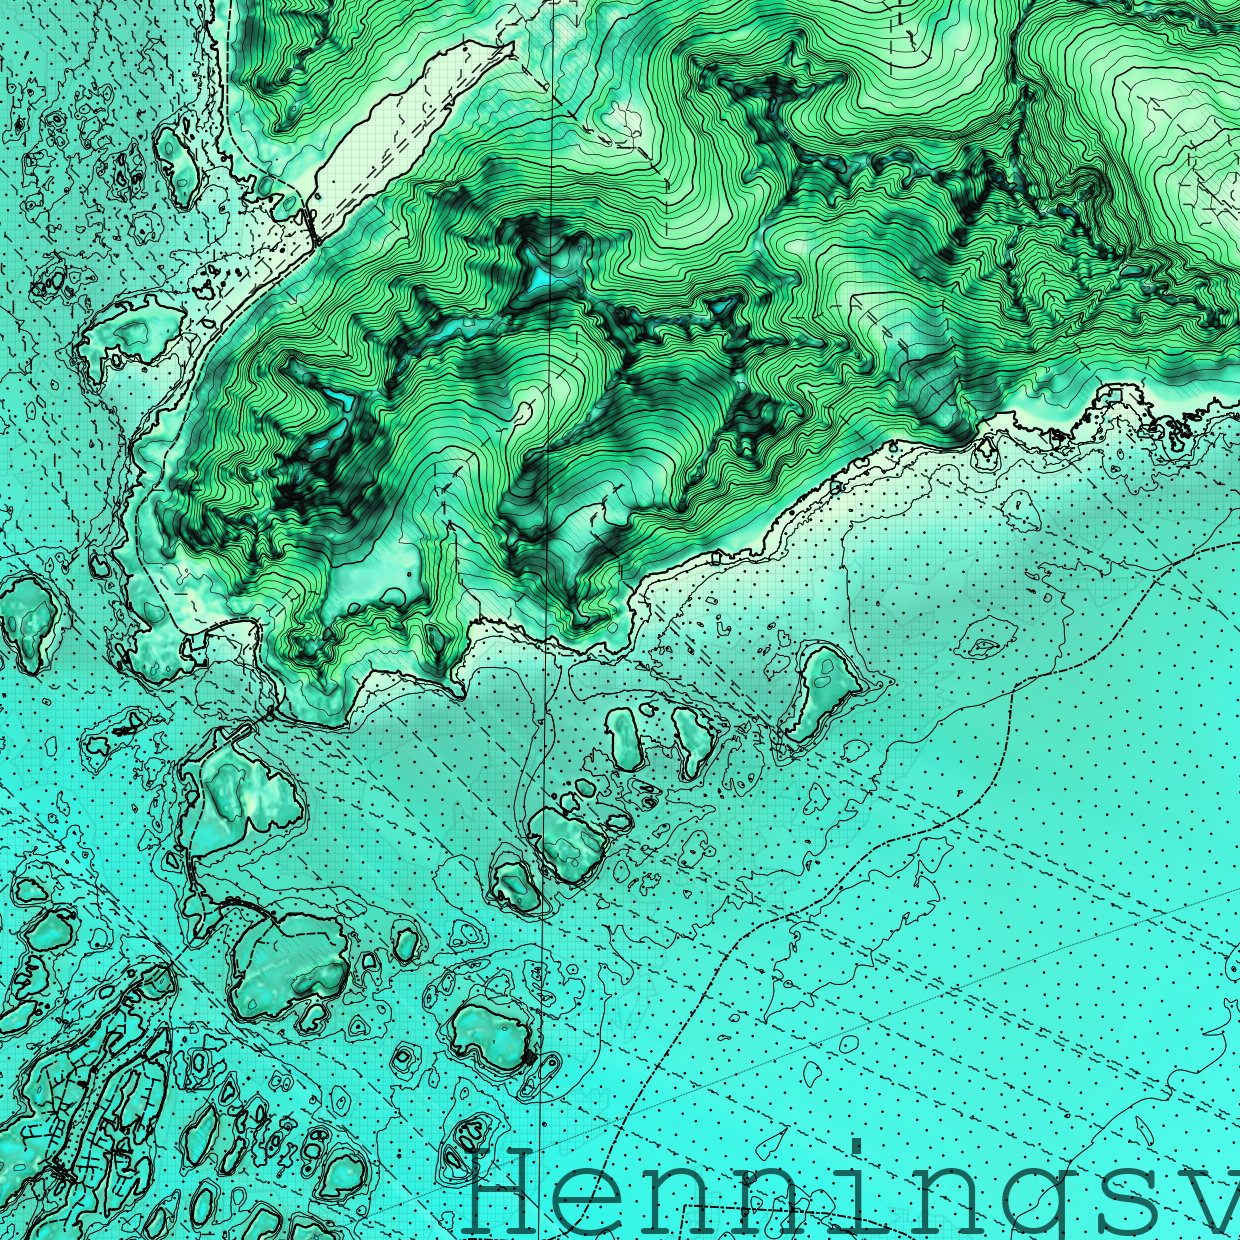 Cartography Lofoten | Area 60x40 km | Adding Terrain Attributes | Data: Kartverket.no | Editing and Mapping: Marc Ihle